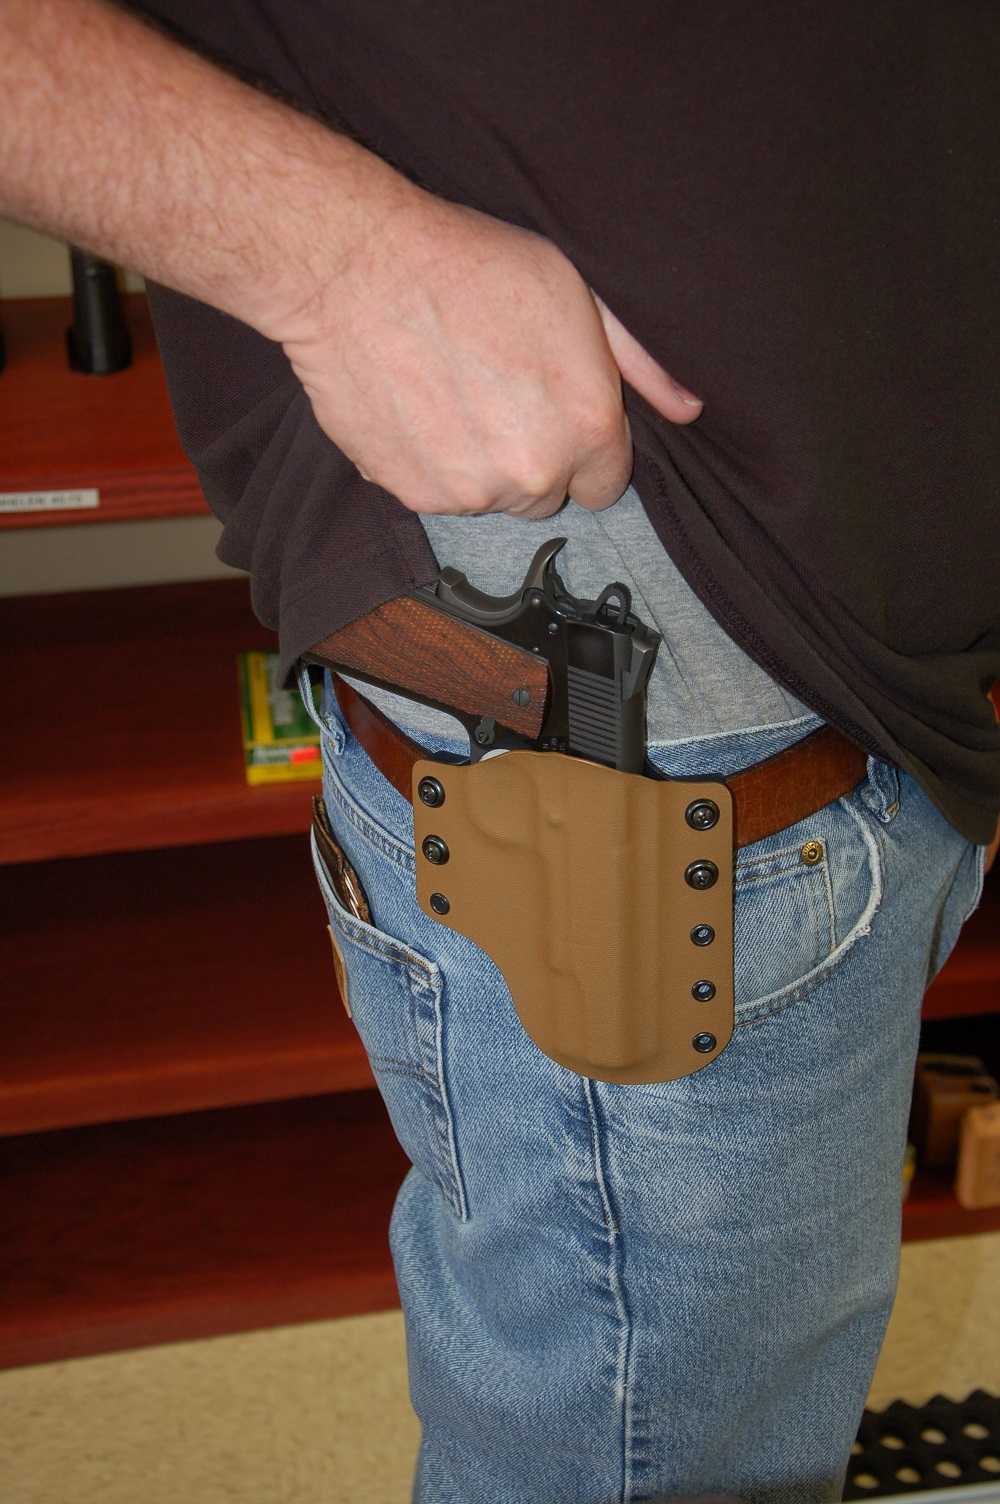 Concealed Carry Options